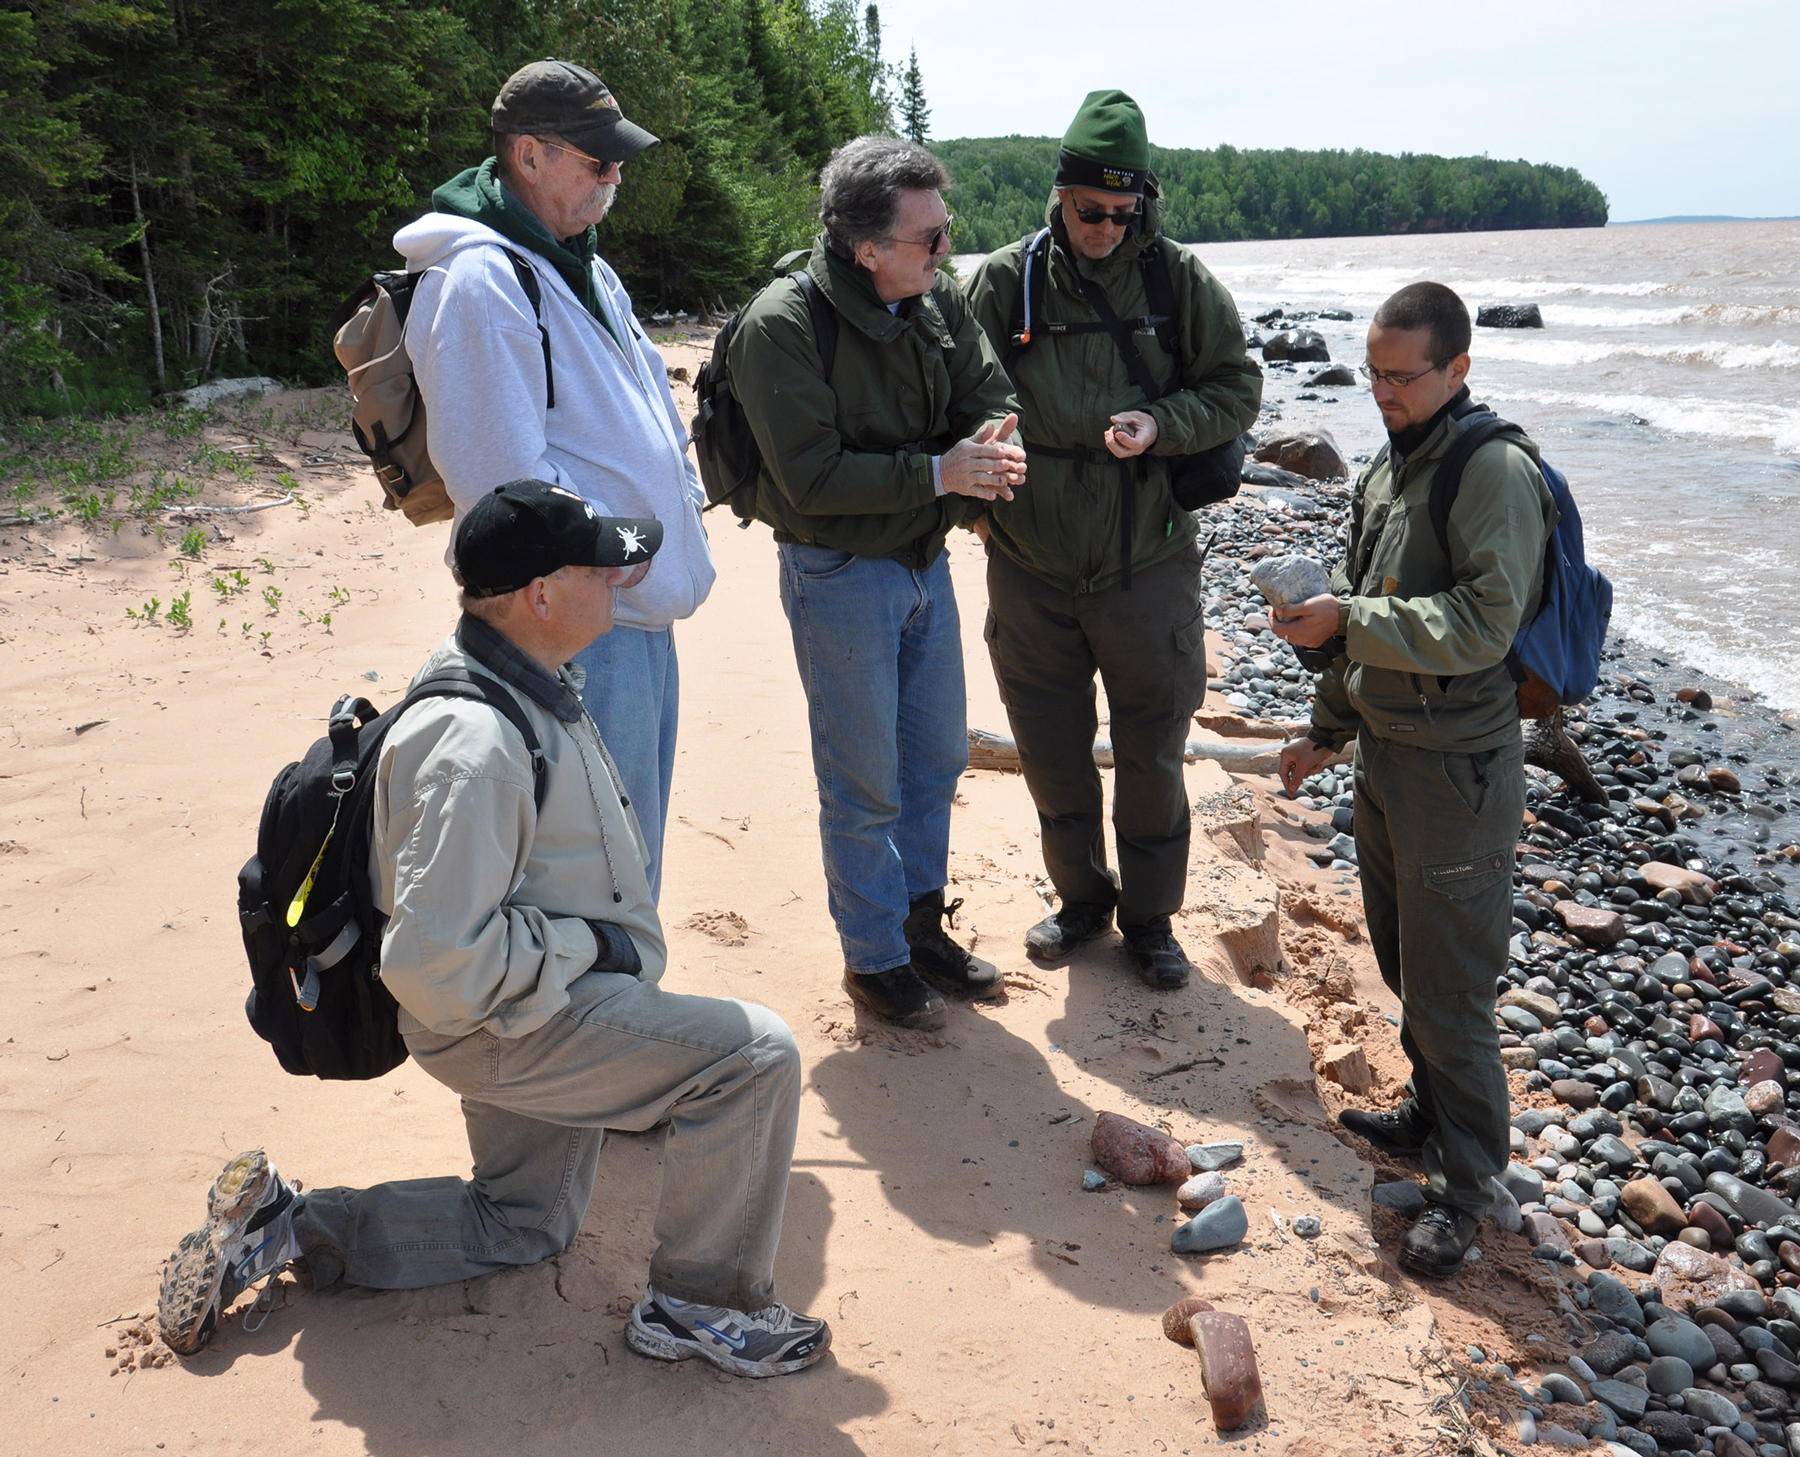 Stu Whipple (center) with other park staff studying the rocks at Mawikwe Bay